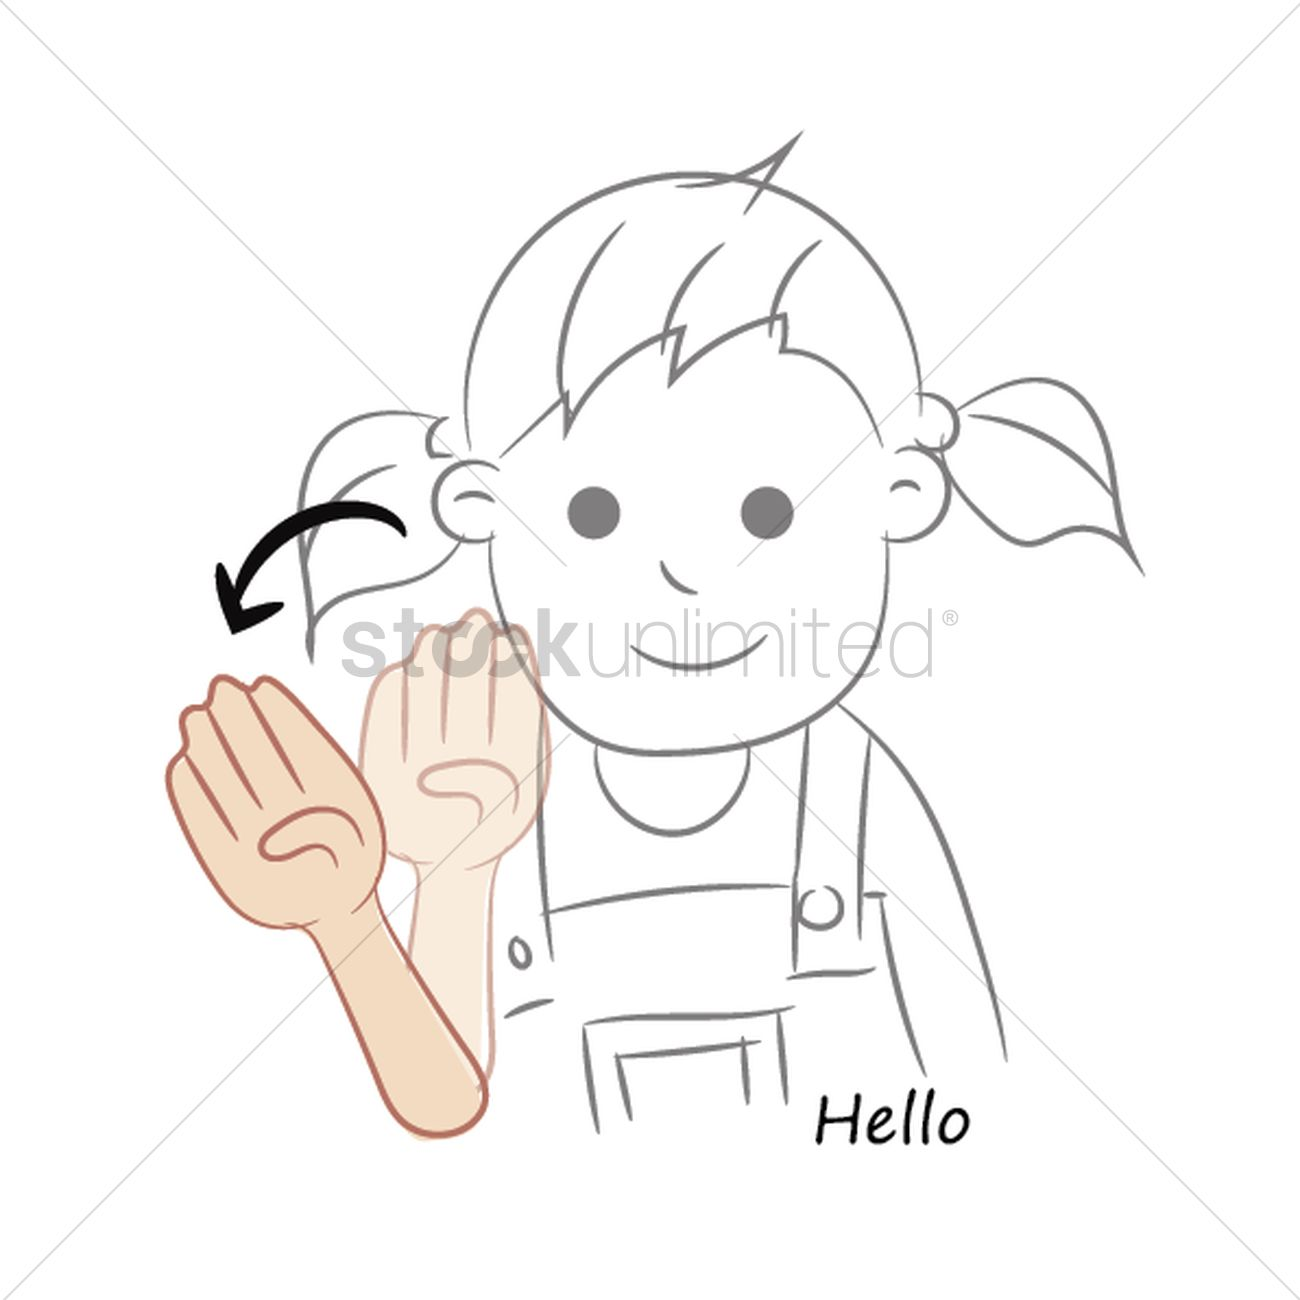 Hello In Sign Language Vector Image 2034145 Stockunlimited